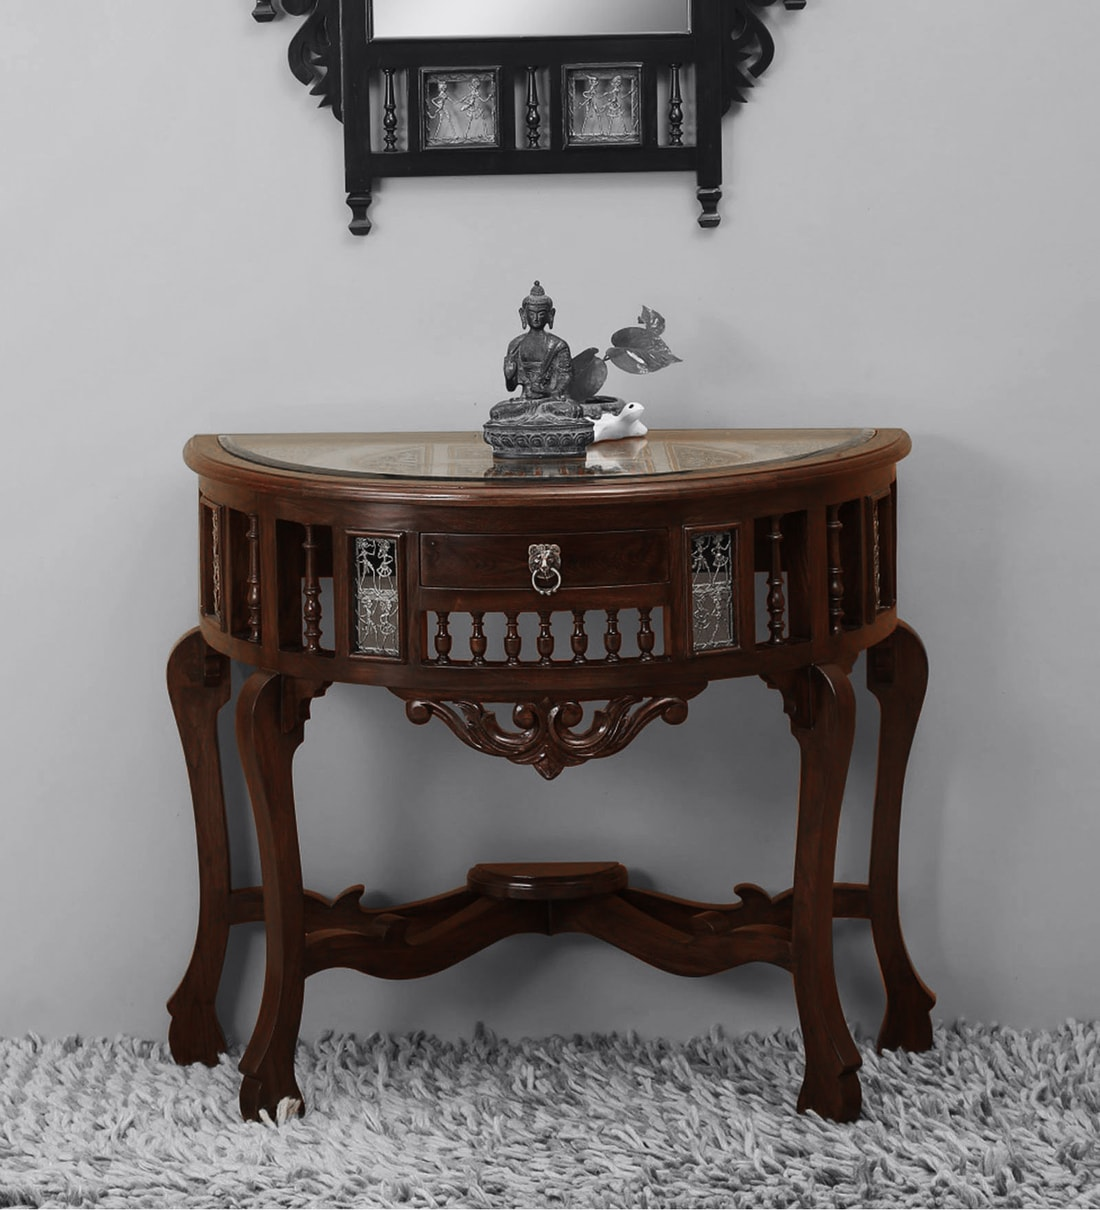 Awadh Console Table in Walnut Finish